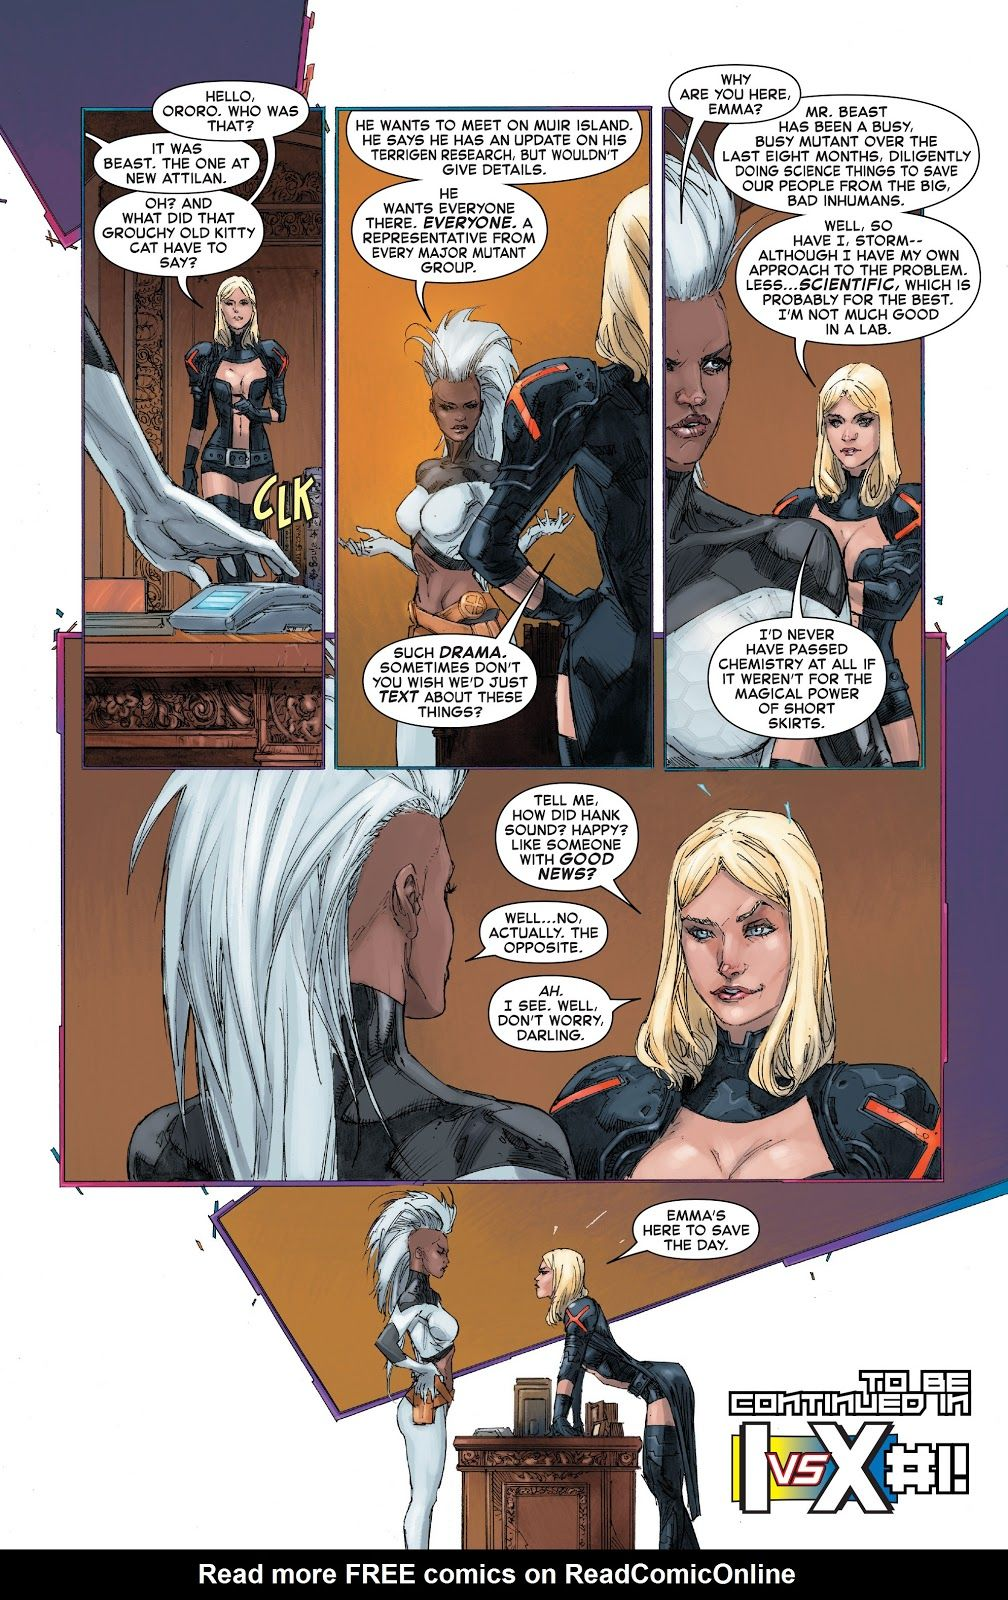 Inhumans Vs X Men Issue 0 Read Inhumans Vs X Men Issue 0 Comic Online In High Quality Comics Emma Frost X Men